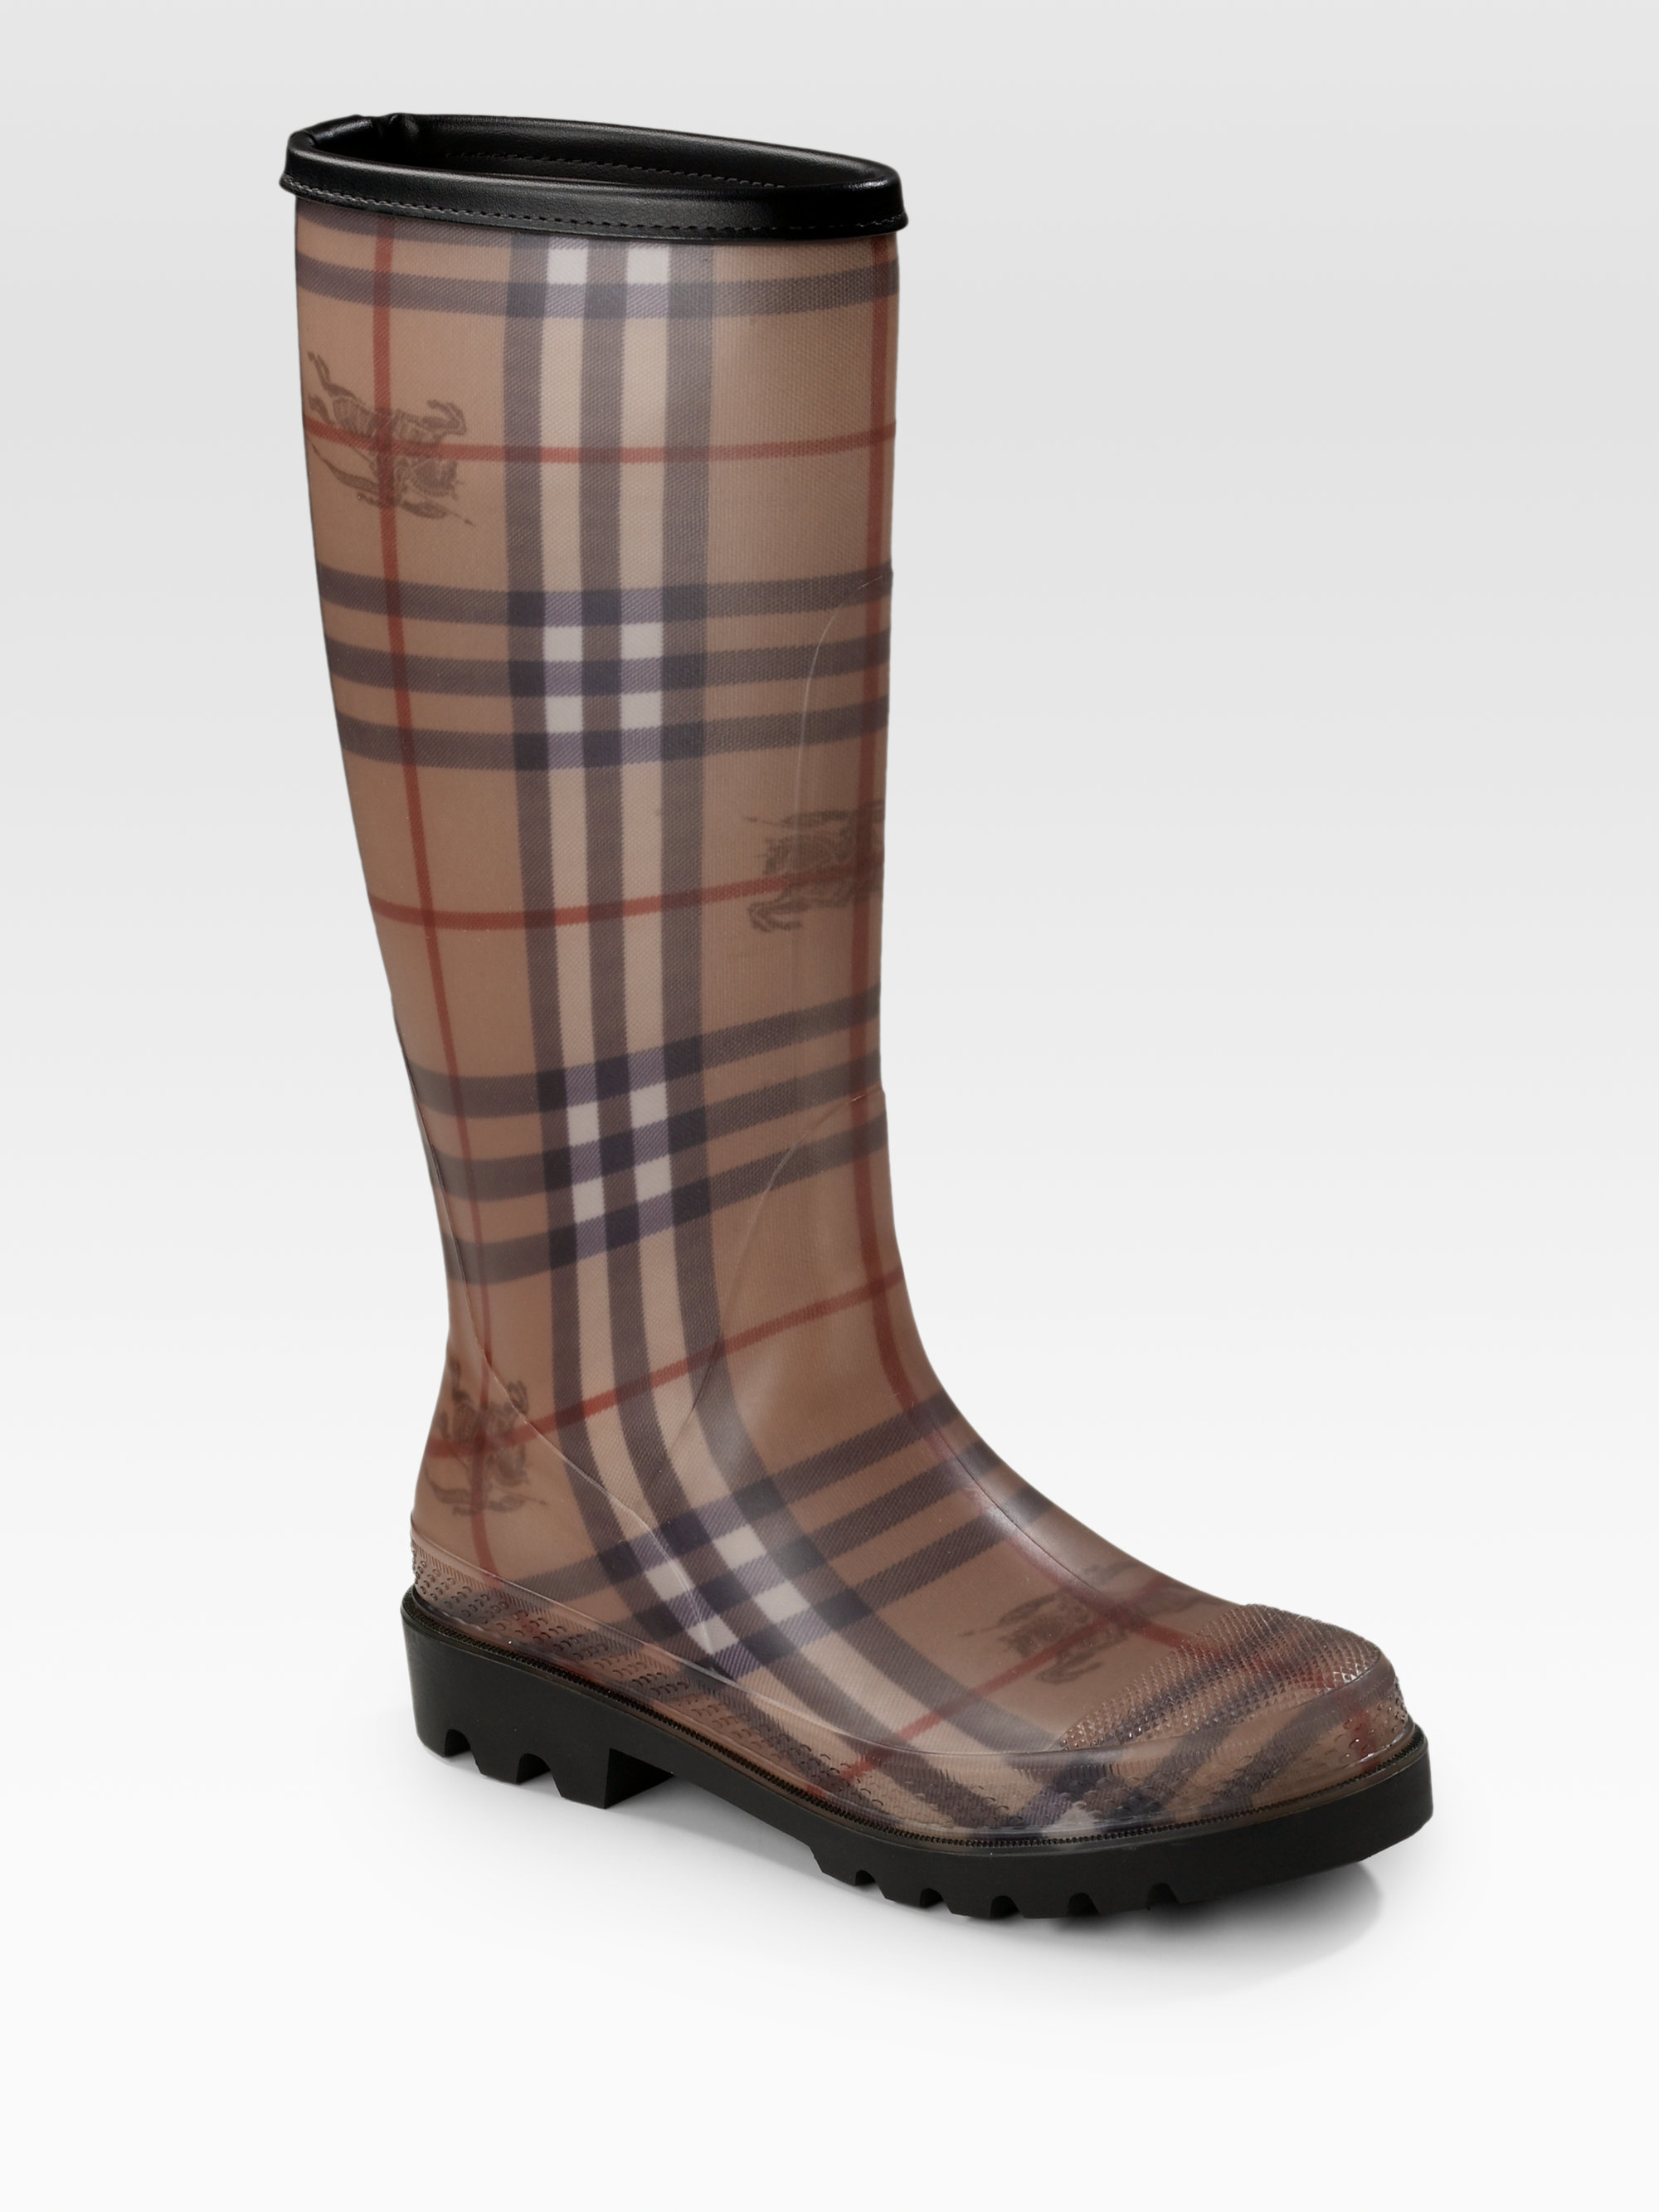 Burberry Classic Check Rain Boots in Brown | Lyst